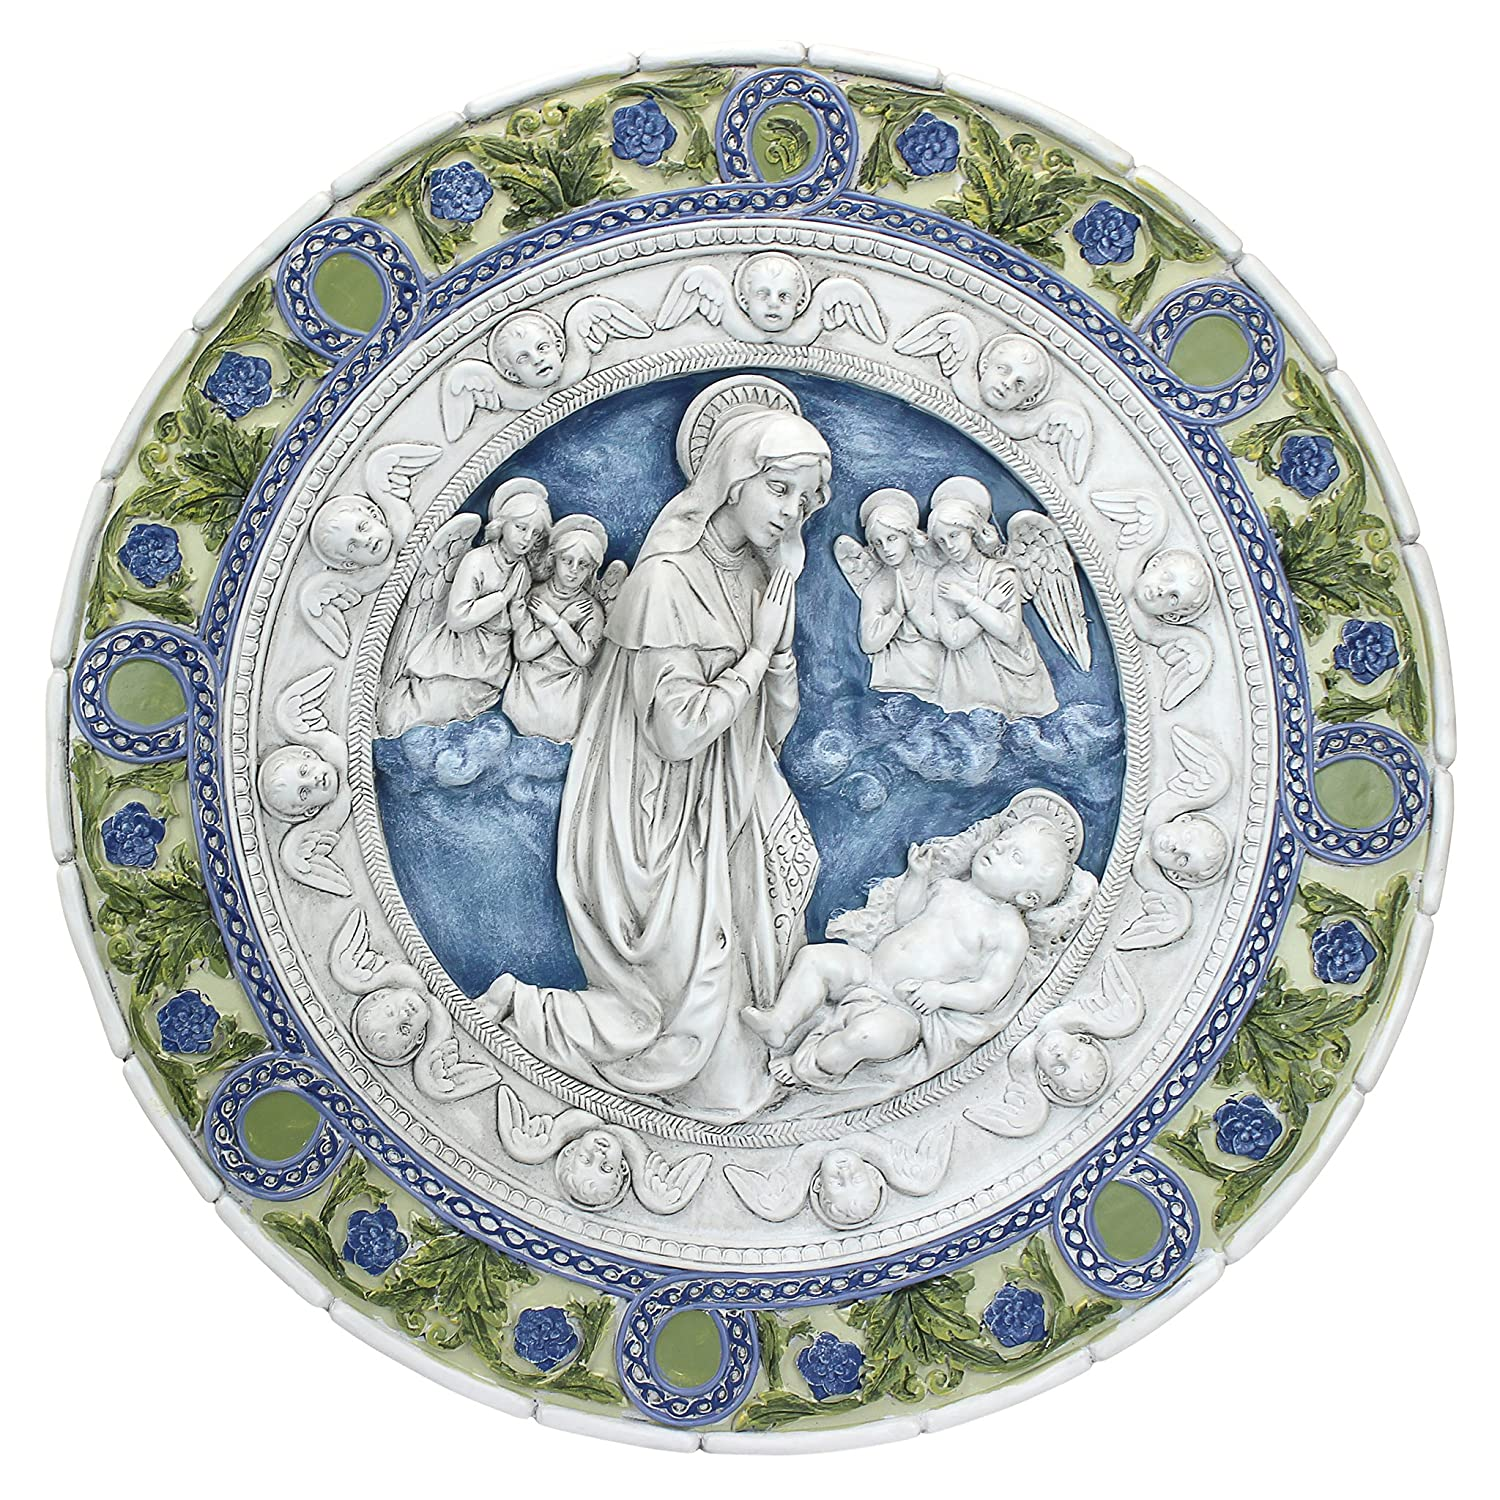 Amazon.com: Design Toscano Adoration of the Child Roundel Wall ...